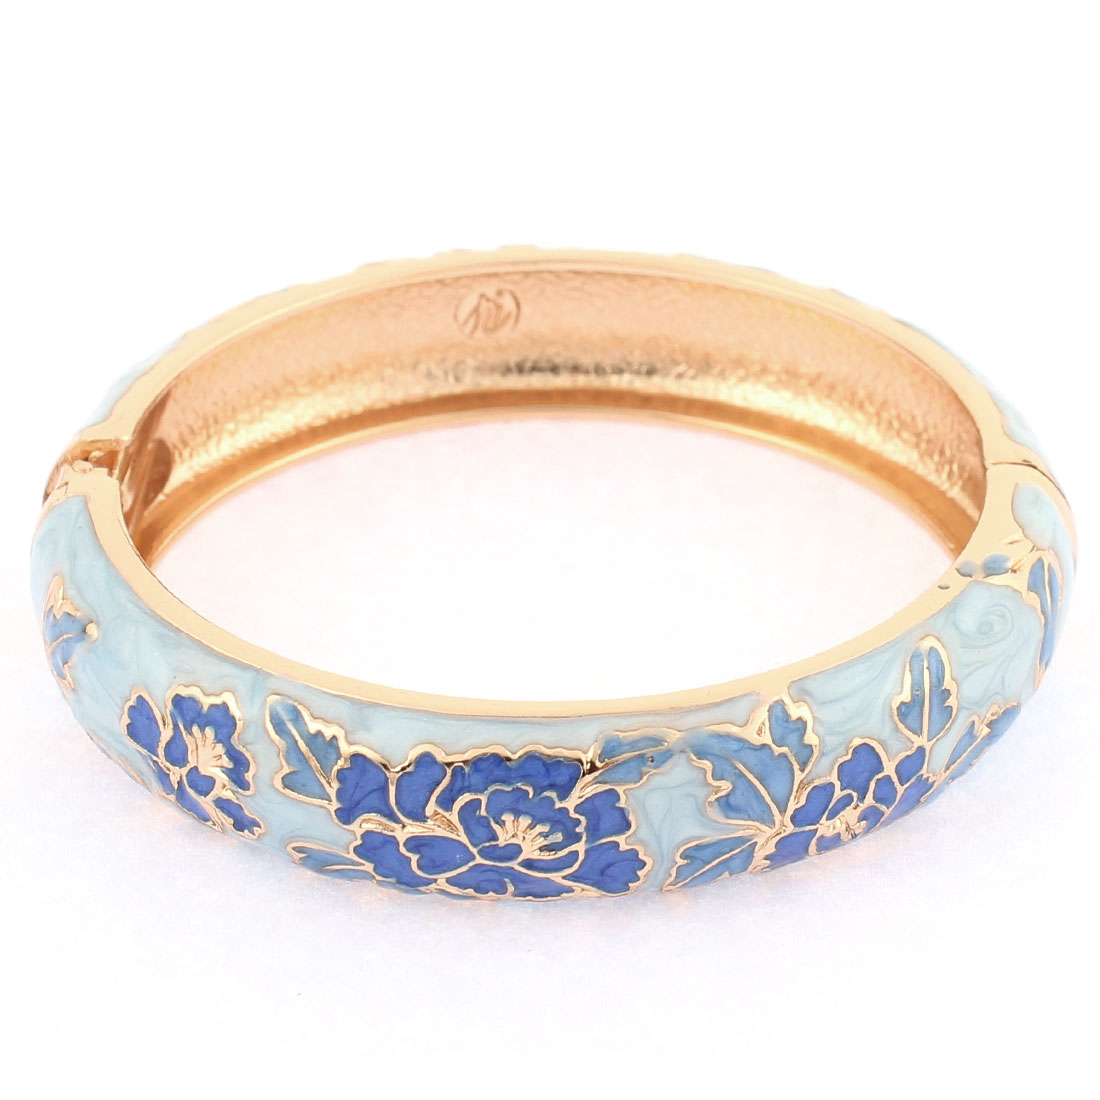 Lady Spring Closure Floral Enamel Round Metal Bracelet Bangle Wrist Decoration